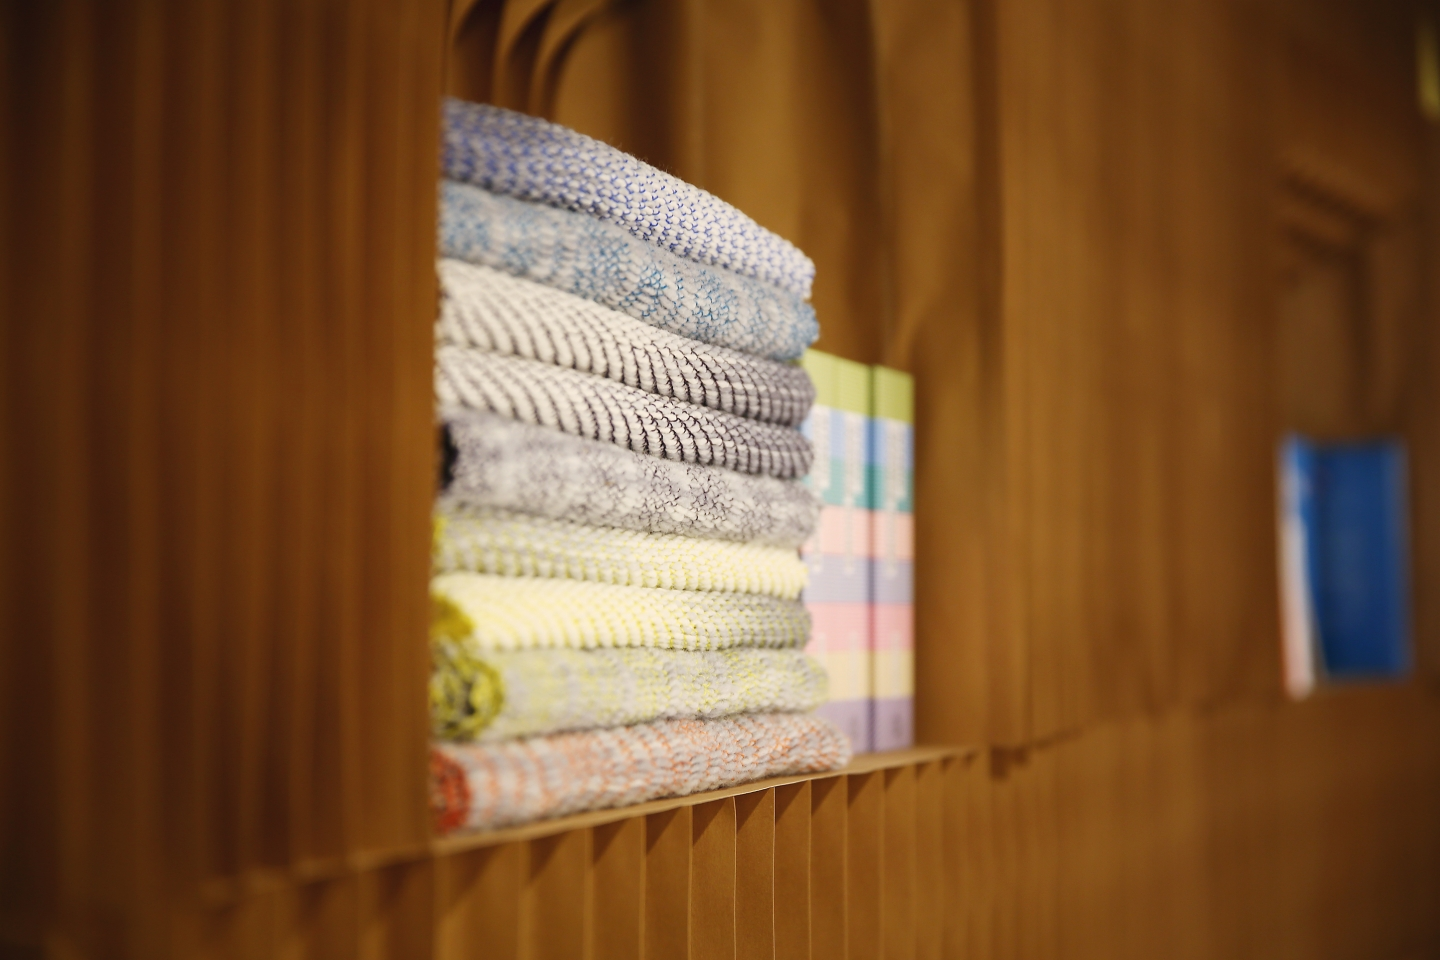 expandable paper furniture by molo - a stack of fabric and books fit into a nook made from a space in paper softblocks